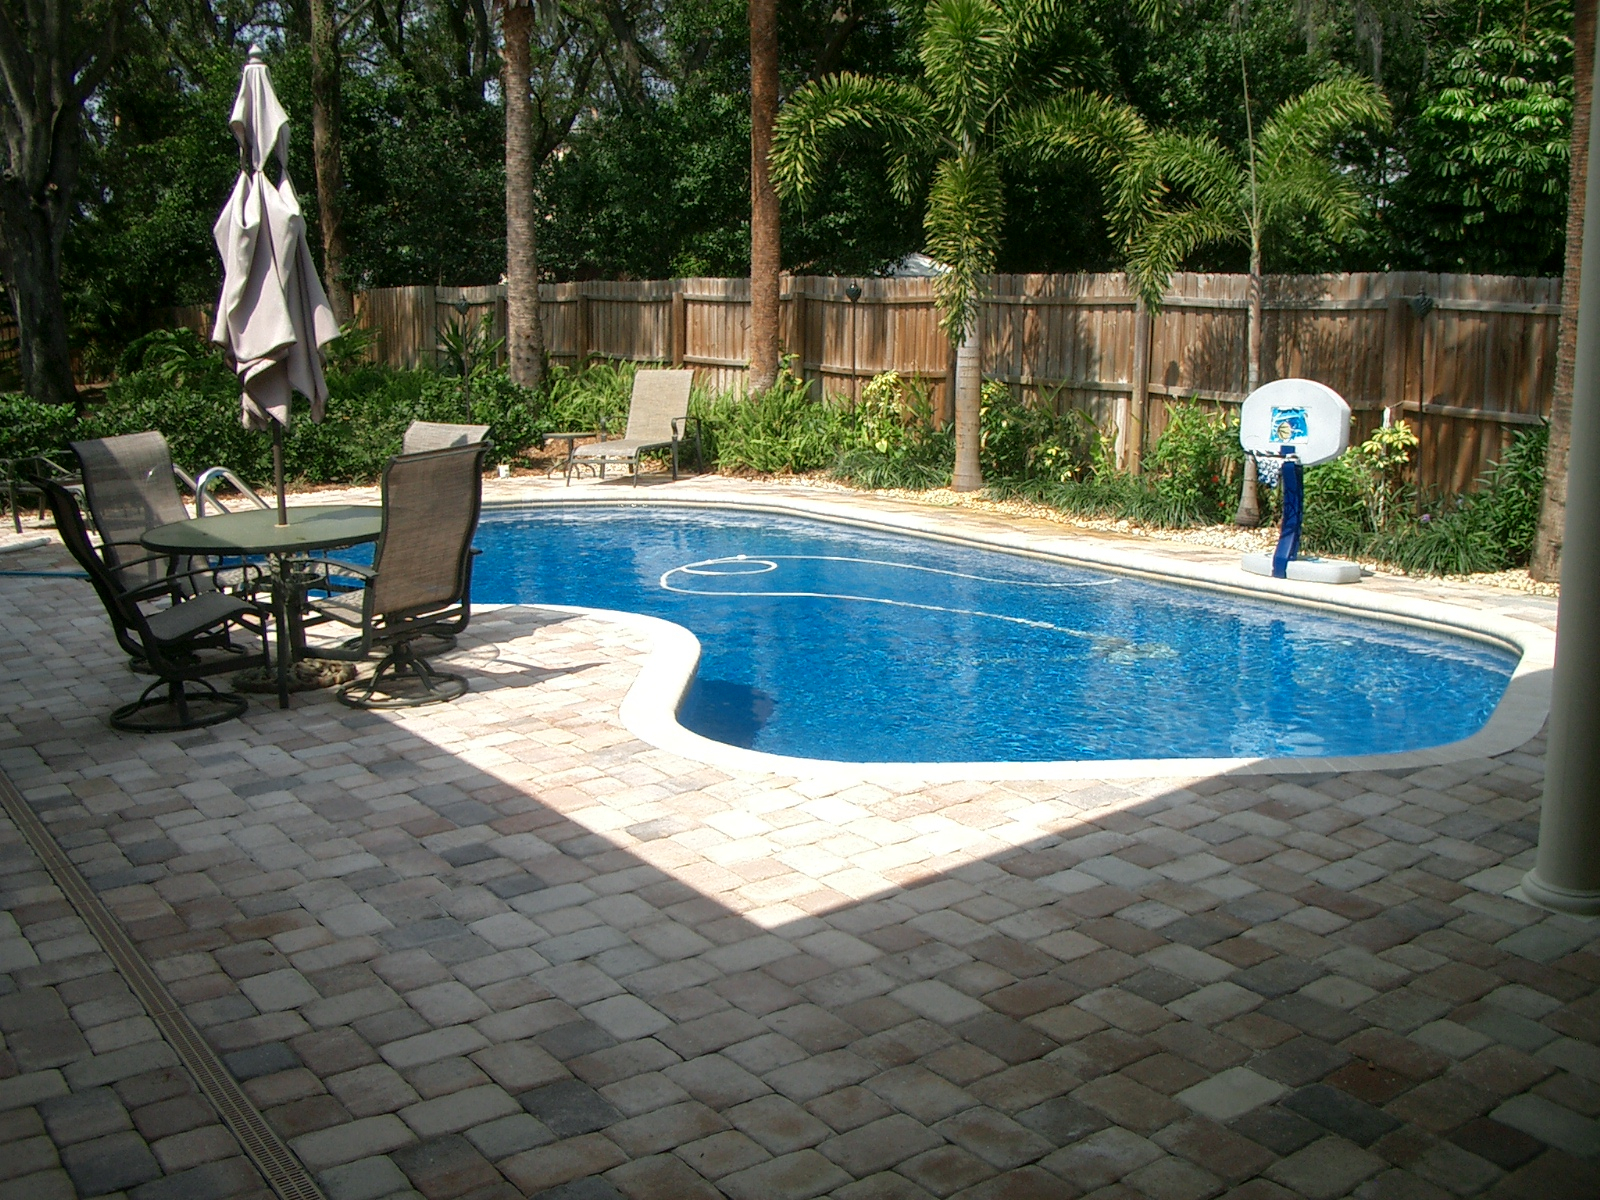 Backyard Backyard Swimming Pool Designs Backyard Pool Fun Backyard intended for 14 Awesome Designs of How to Makeover Backyard Landscaping With Pool